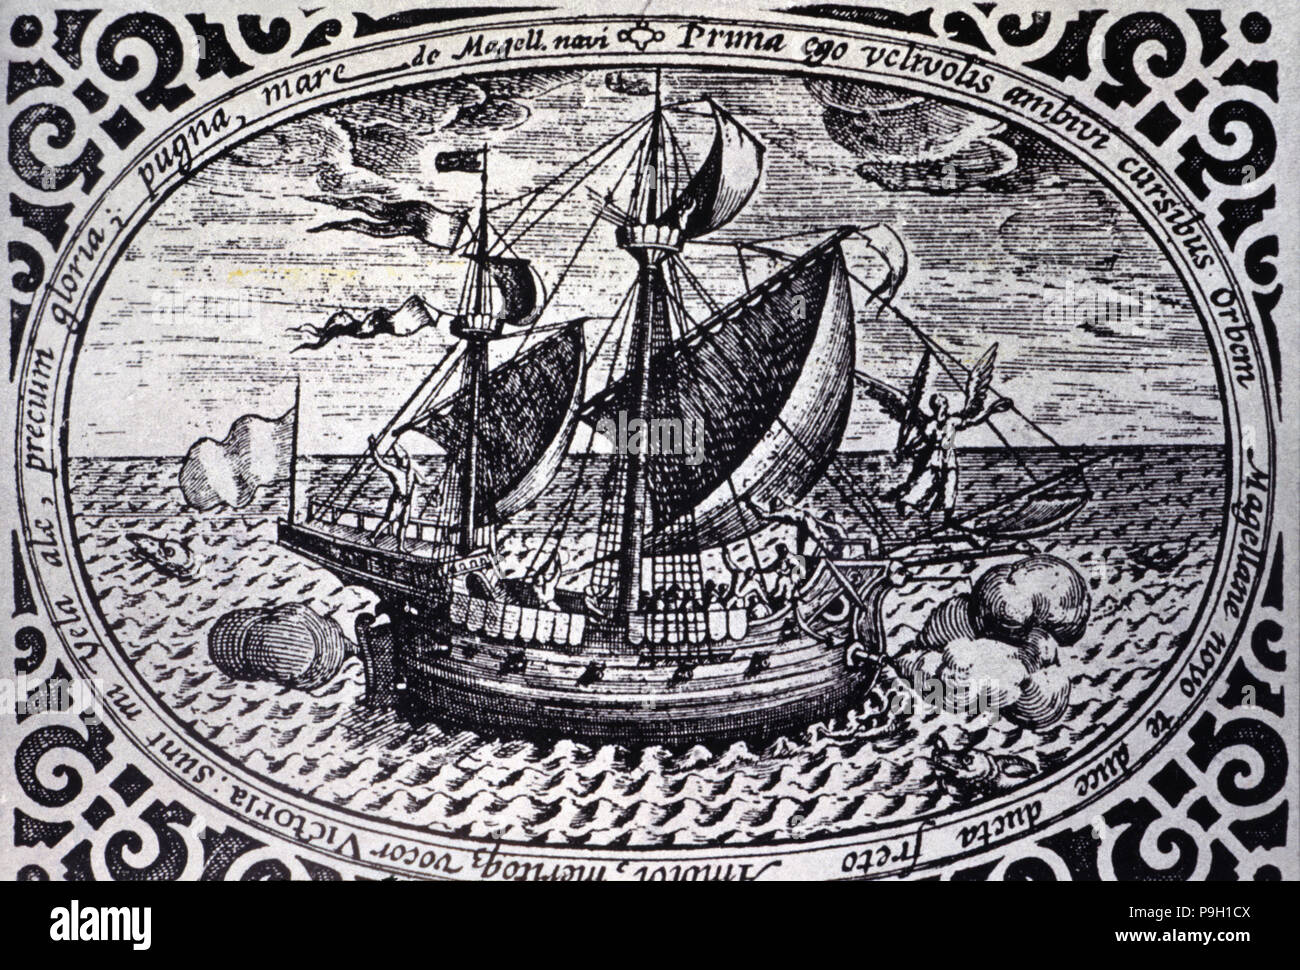 Engraving showing the ship Victoria with which Magellan circumnavigated the Earth between 1519 and 1522. - Stock Image